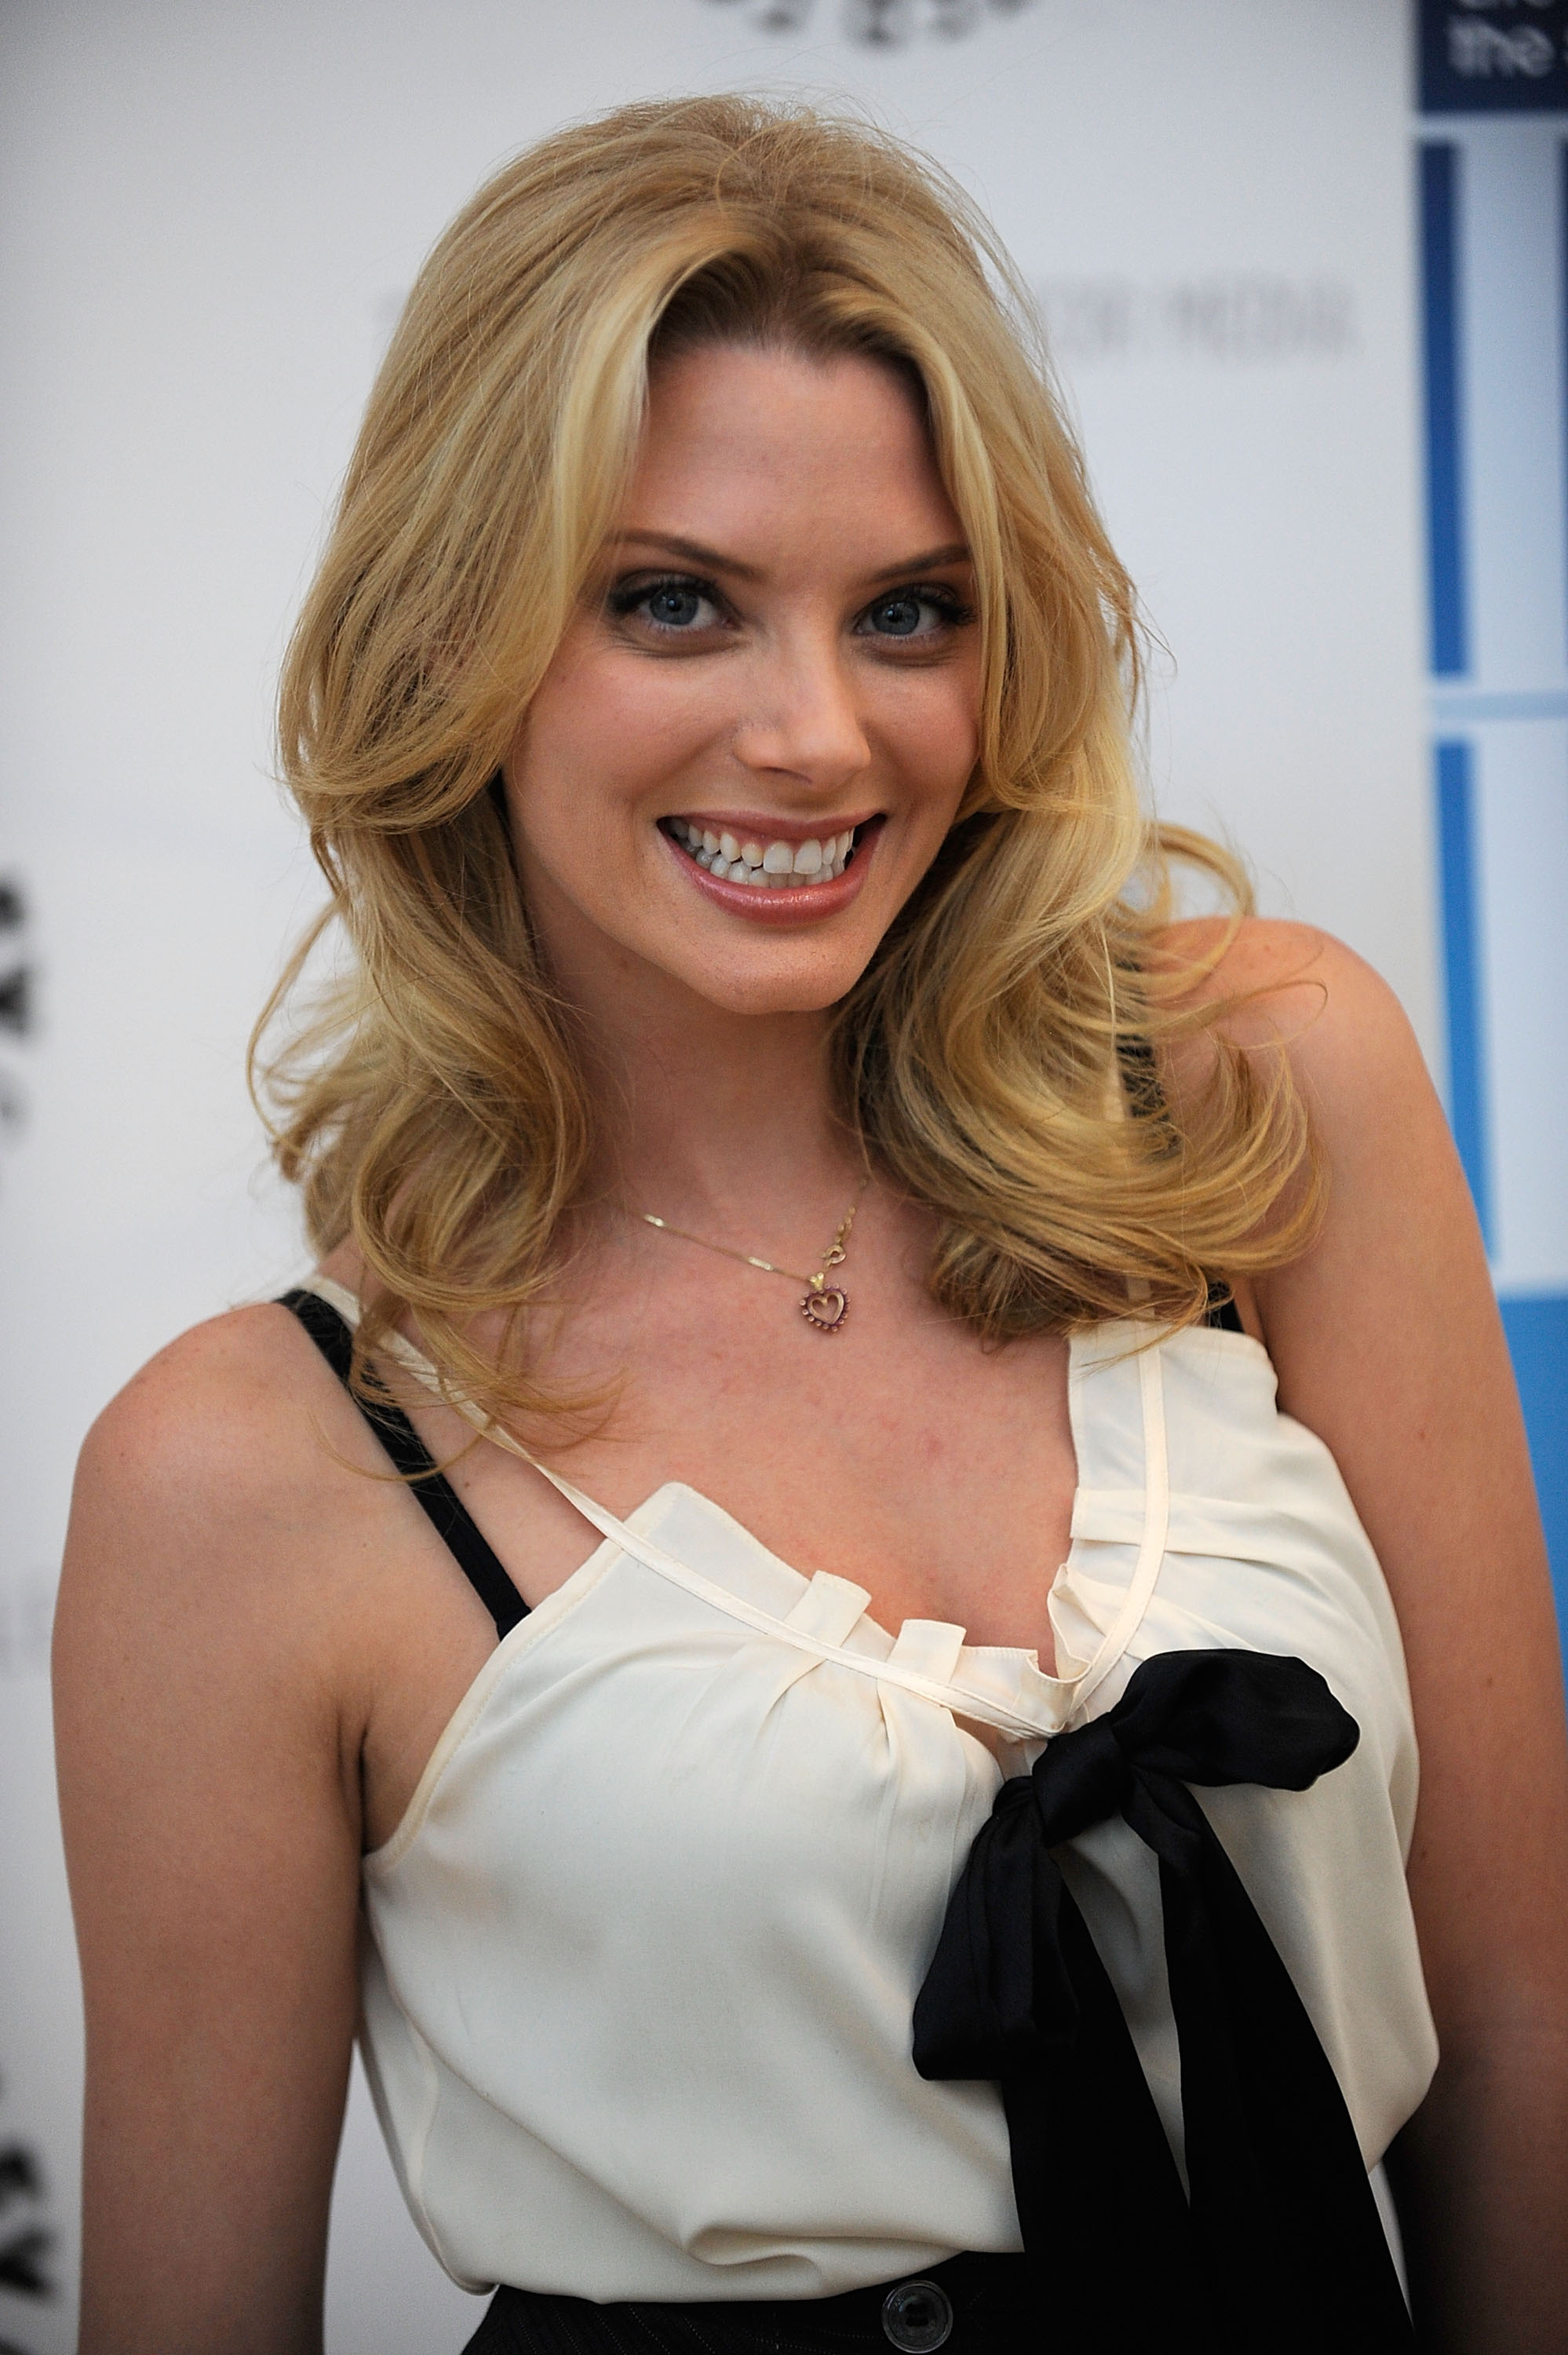 Actress April Bowlby arrives at the 'Drop Dead Diva': Season One Finale held at the Paley Center for Media on October 7, 2009, in Beverly Hills, California. (Photo by Alberto E. Rodriguez/Getty Images)